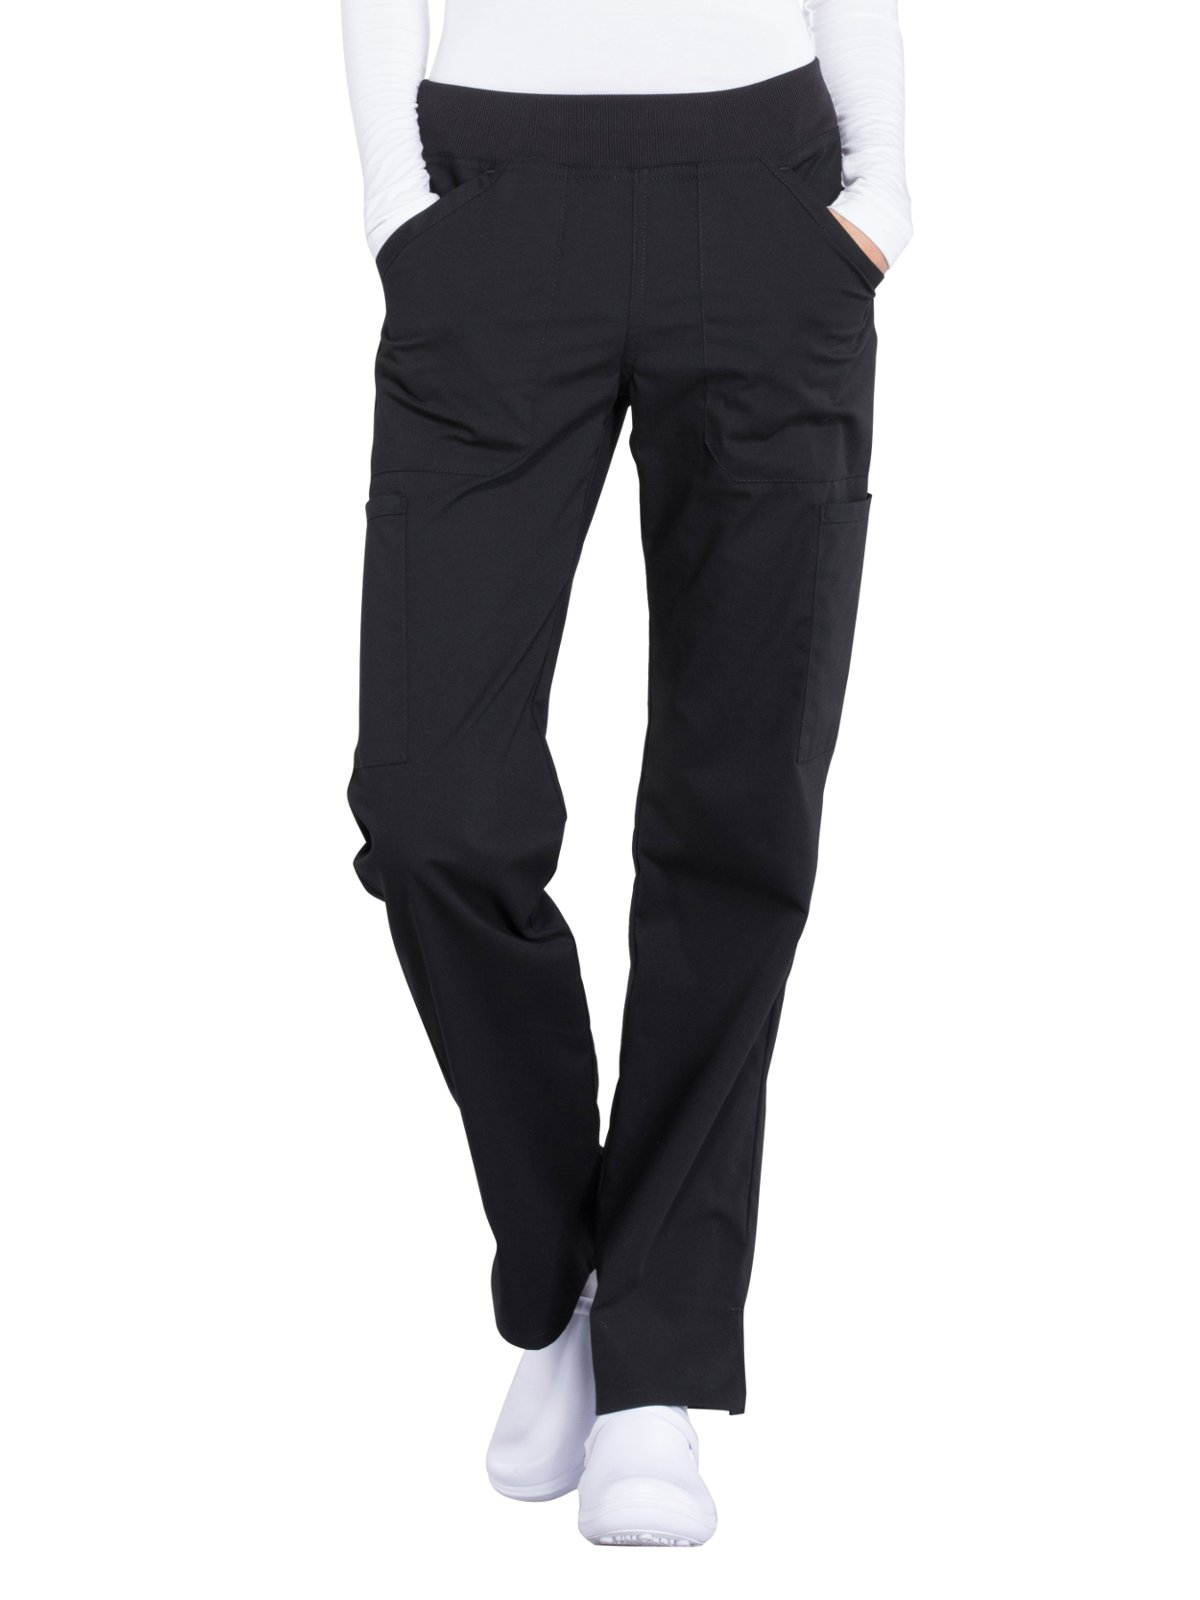 Cherokee Professionals Workwear Women's Elastic Waistband Pull On Cargo Scrub Pant Medium Petite Black